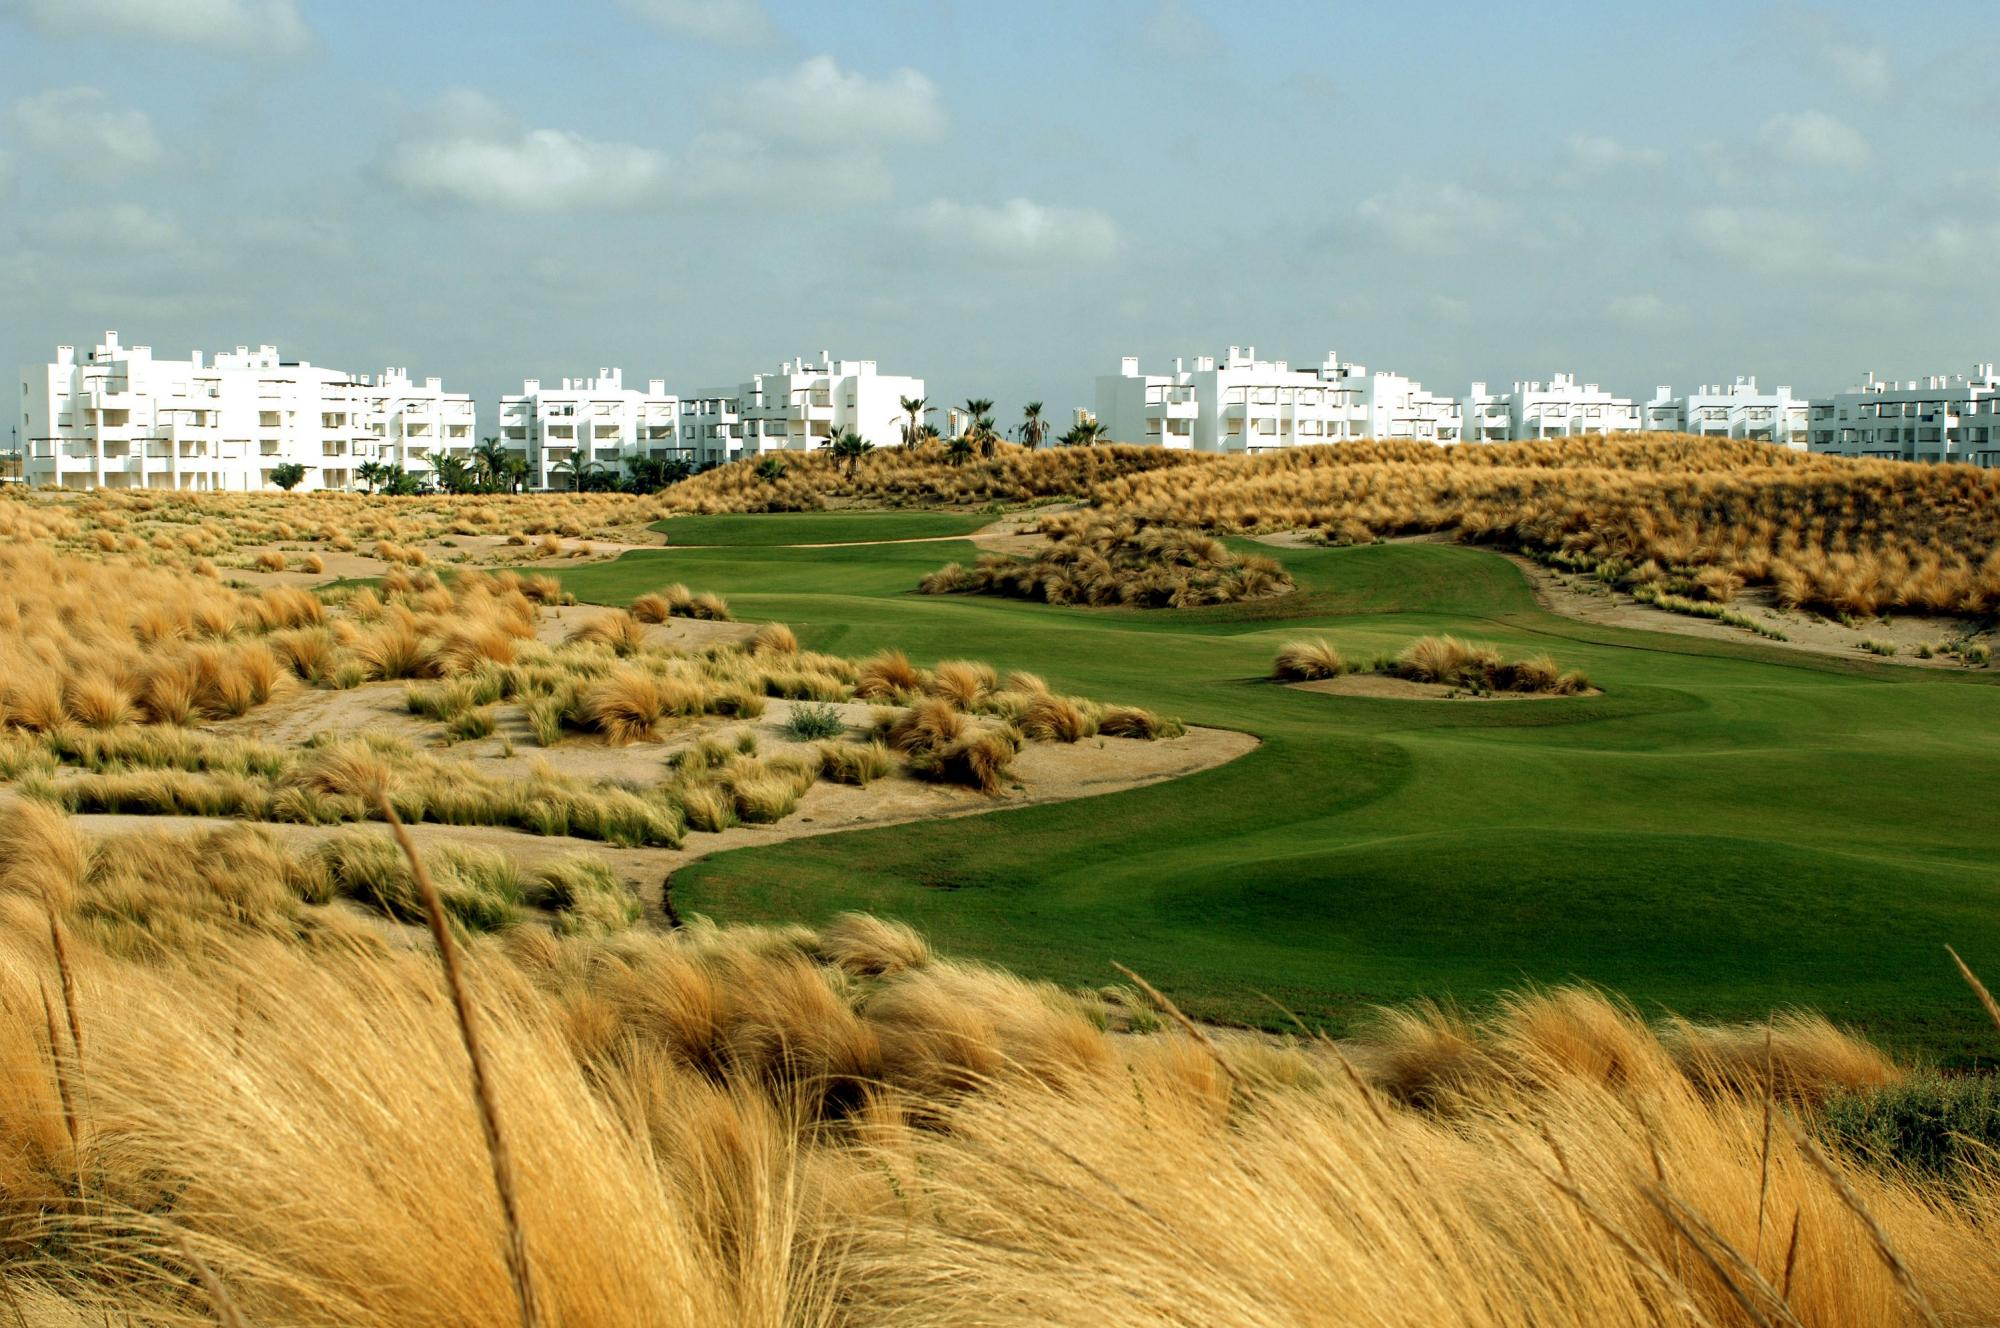 View Saurines de la Torre Golf Course 's impressive golf course situated in incredible Costa Blanca.